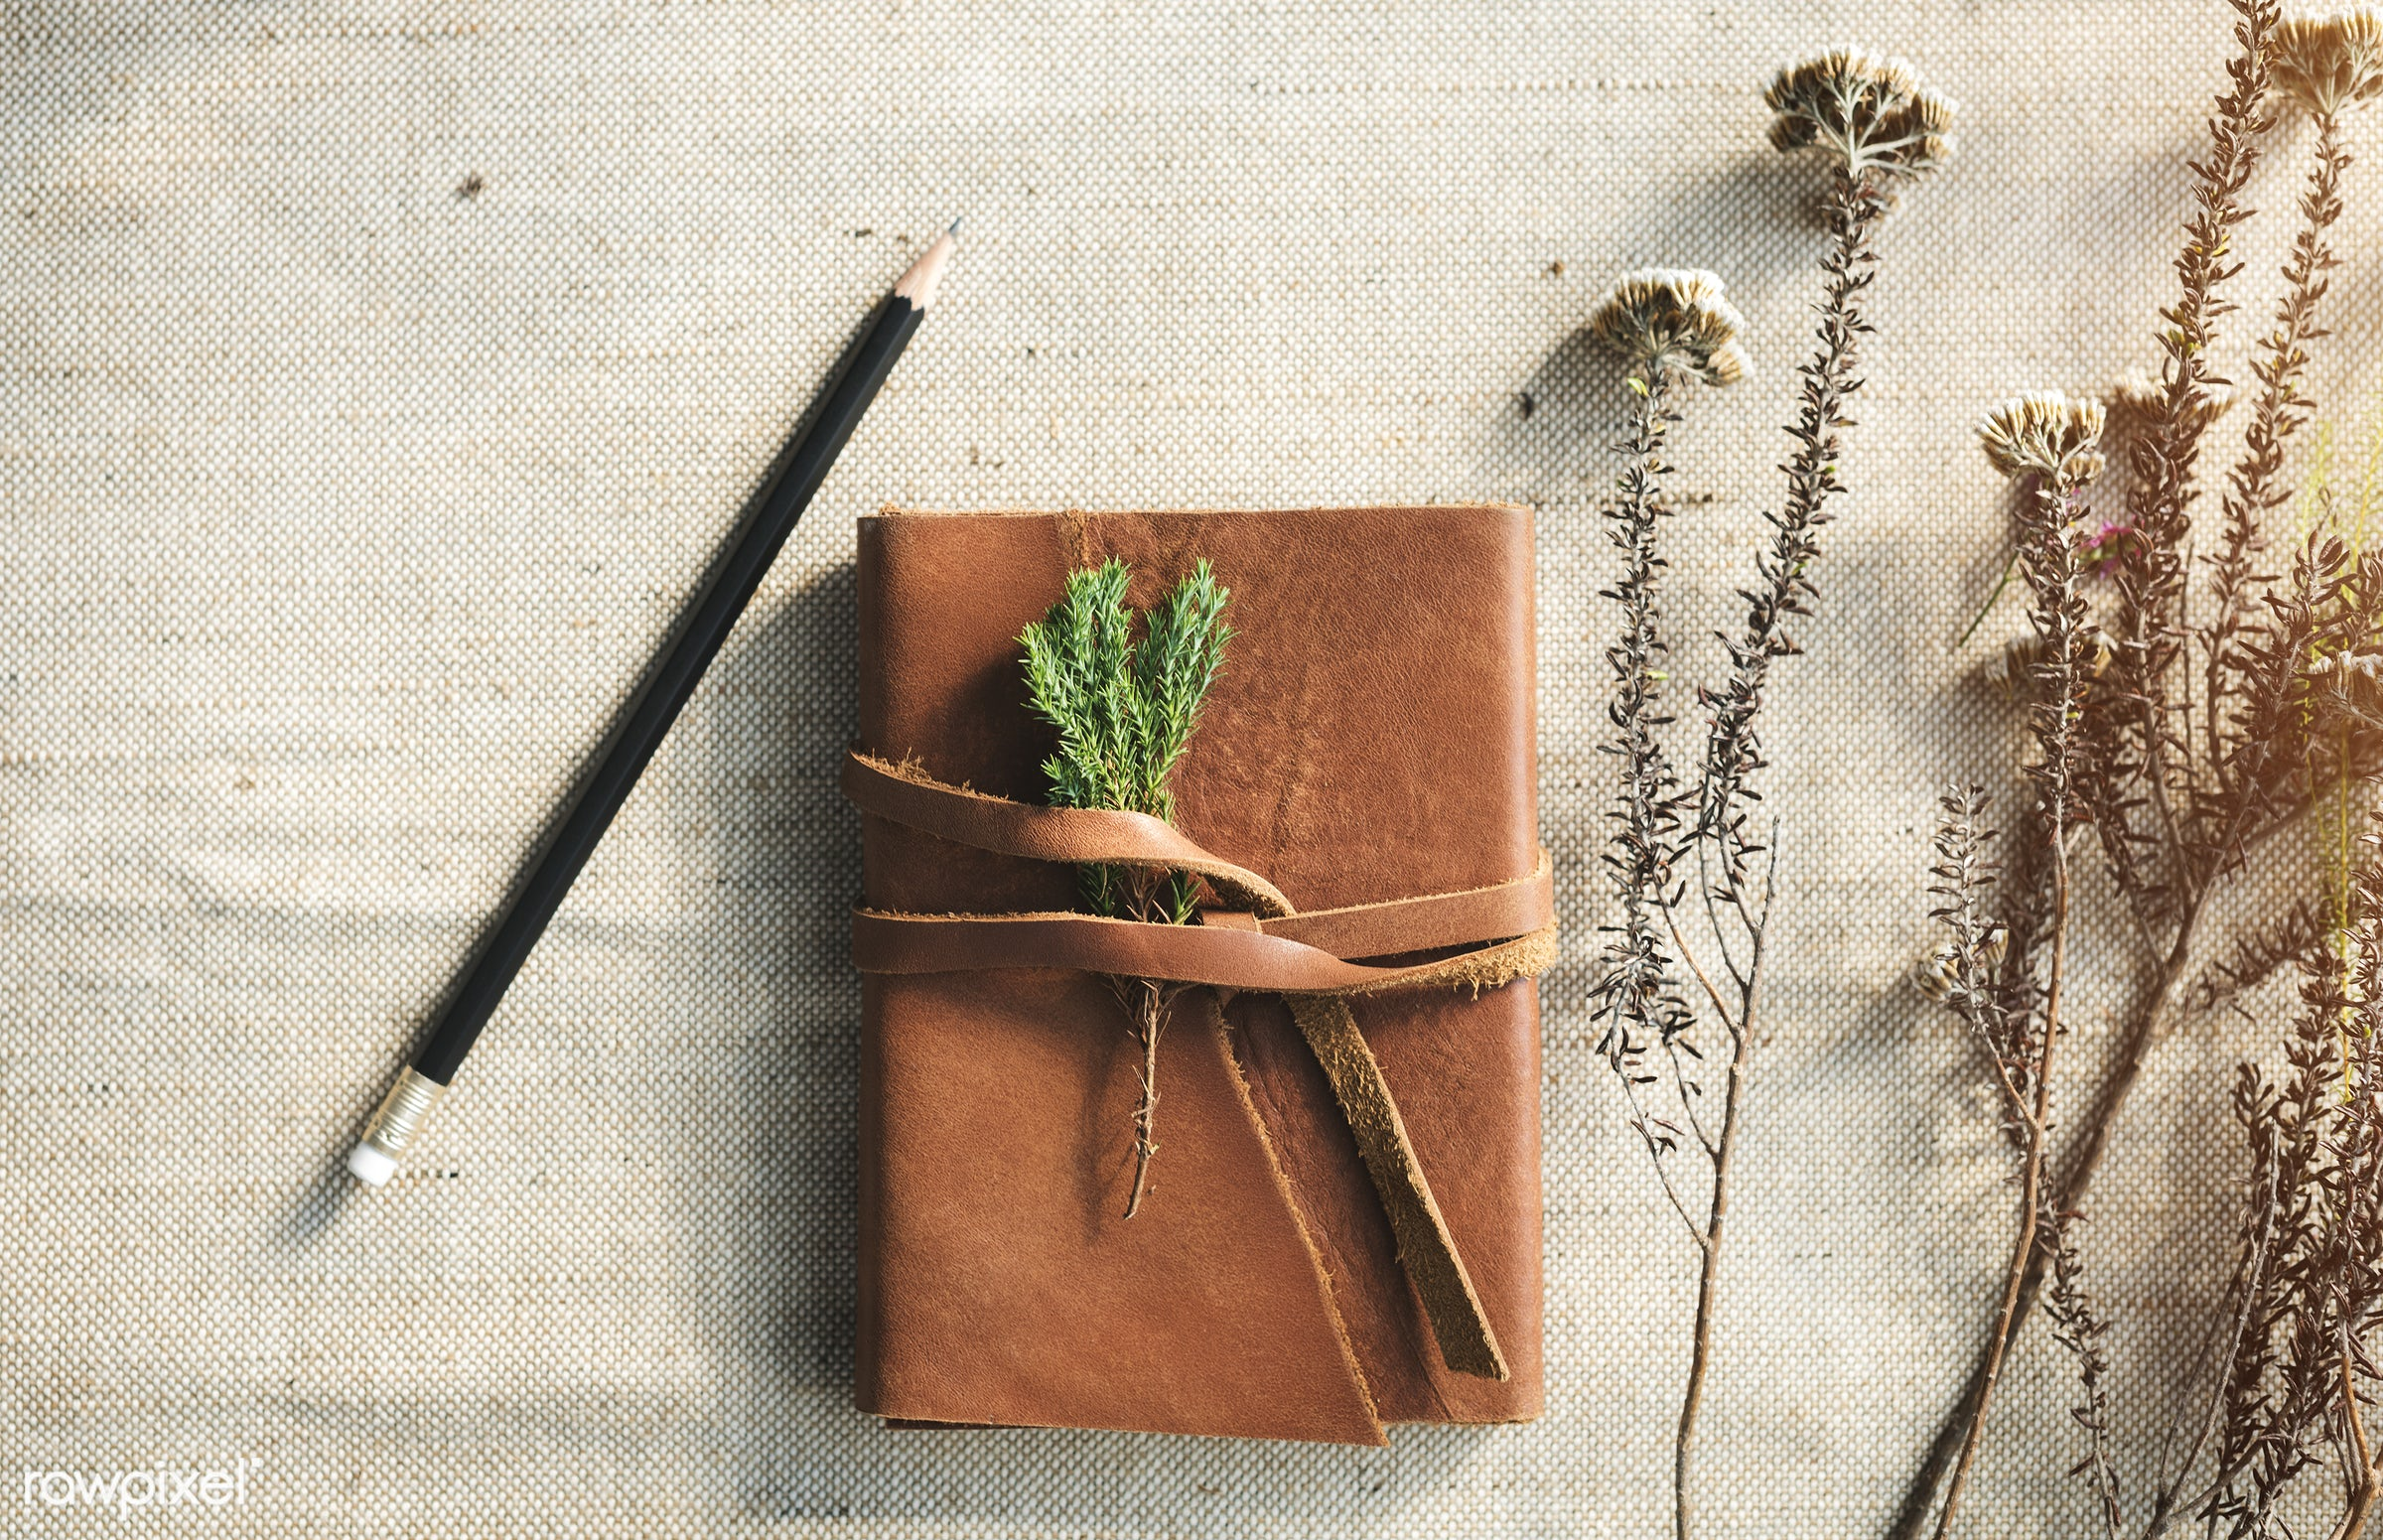 Flowers handicraft workshop - book, flower, serene, relax, notebook, note, stationery, leather, joy, solitude, smell, floral...